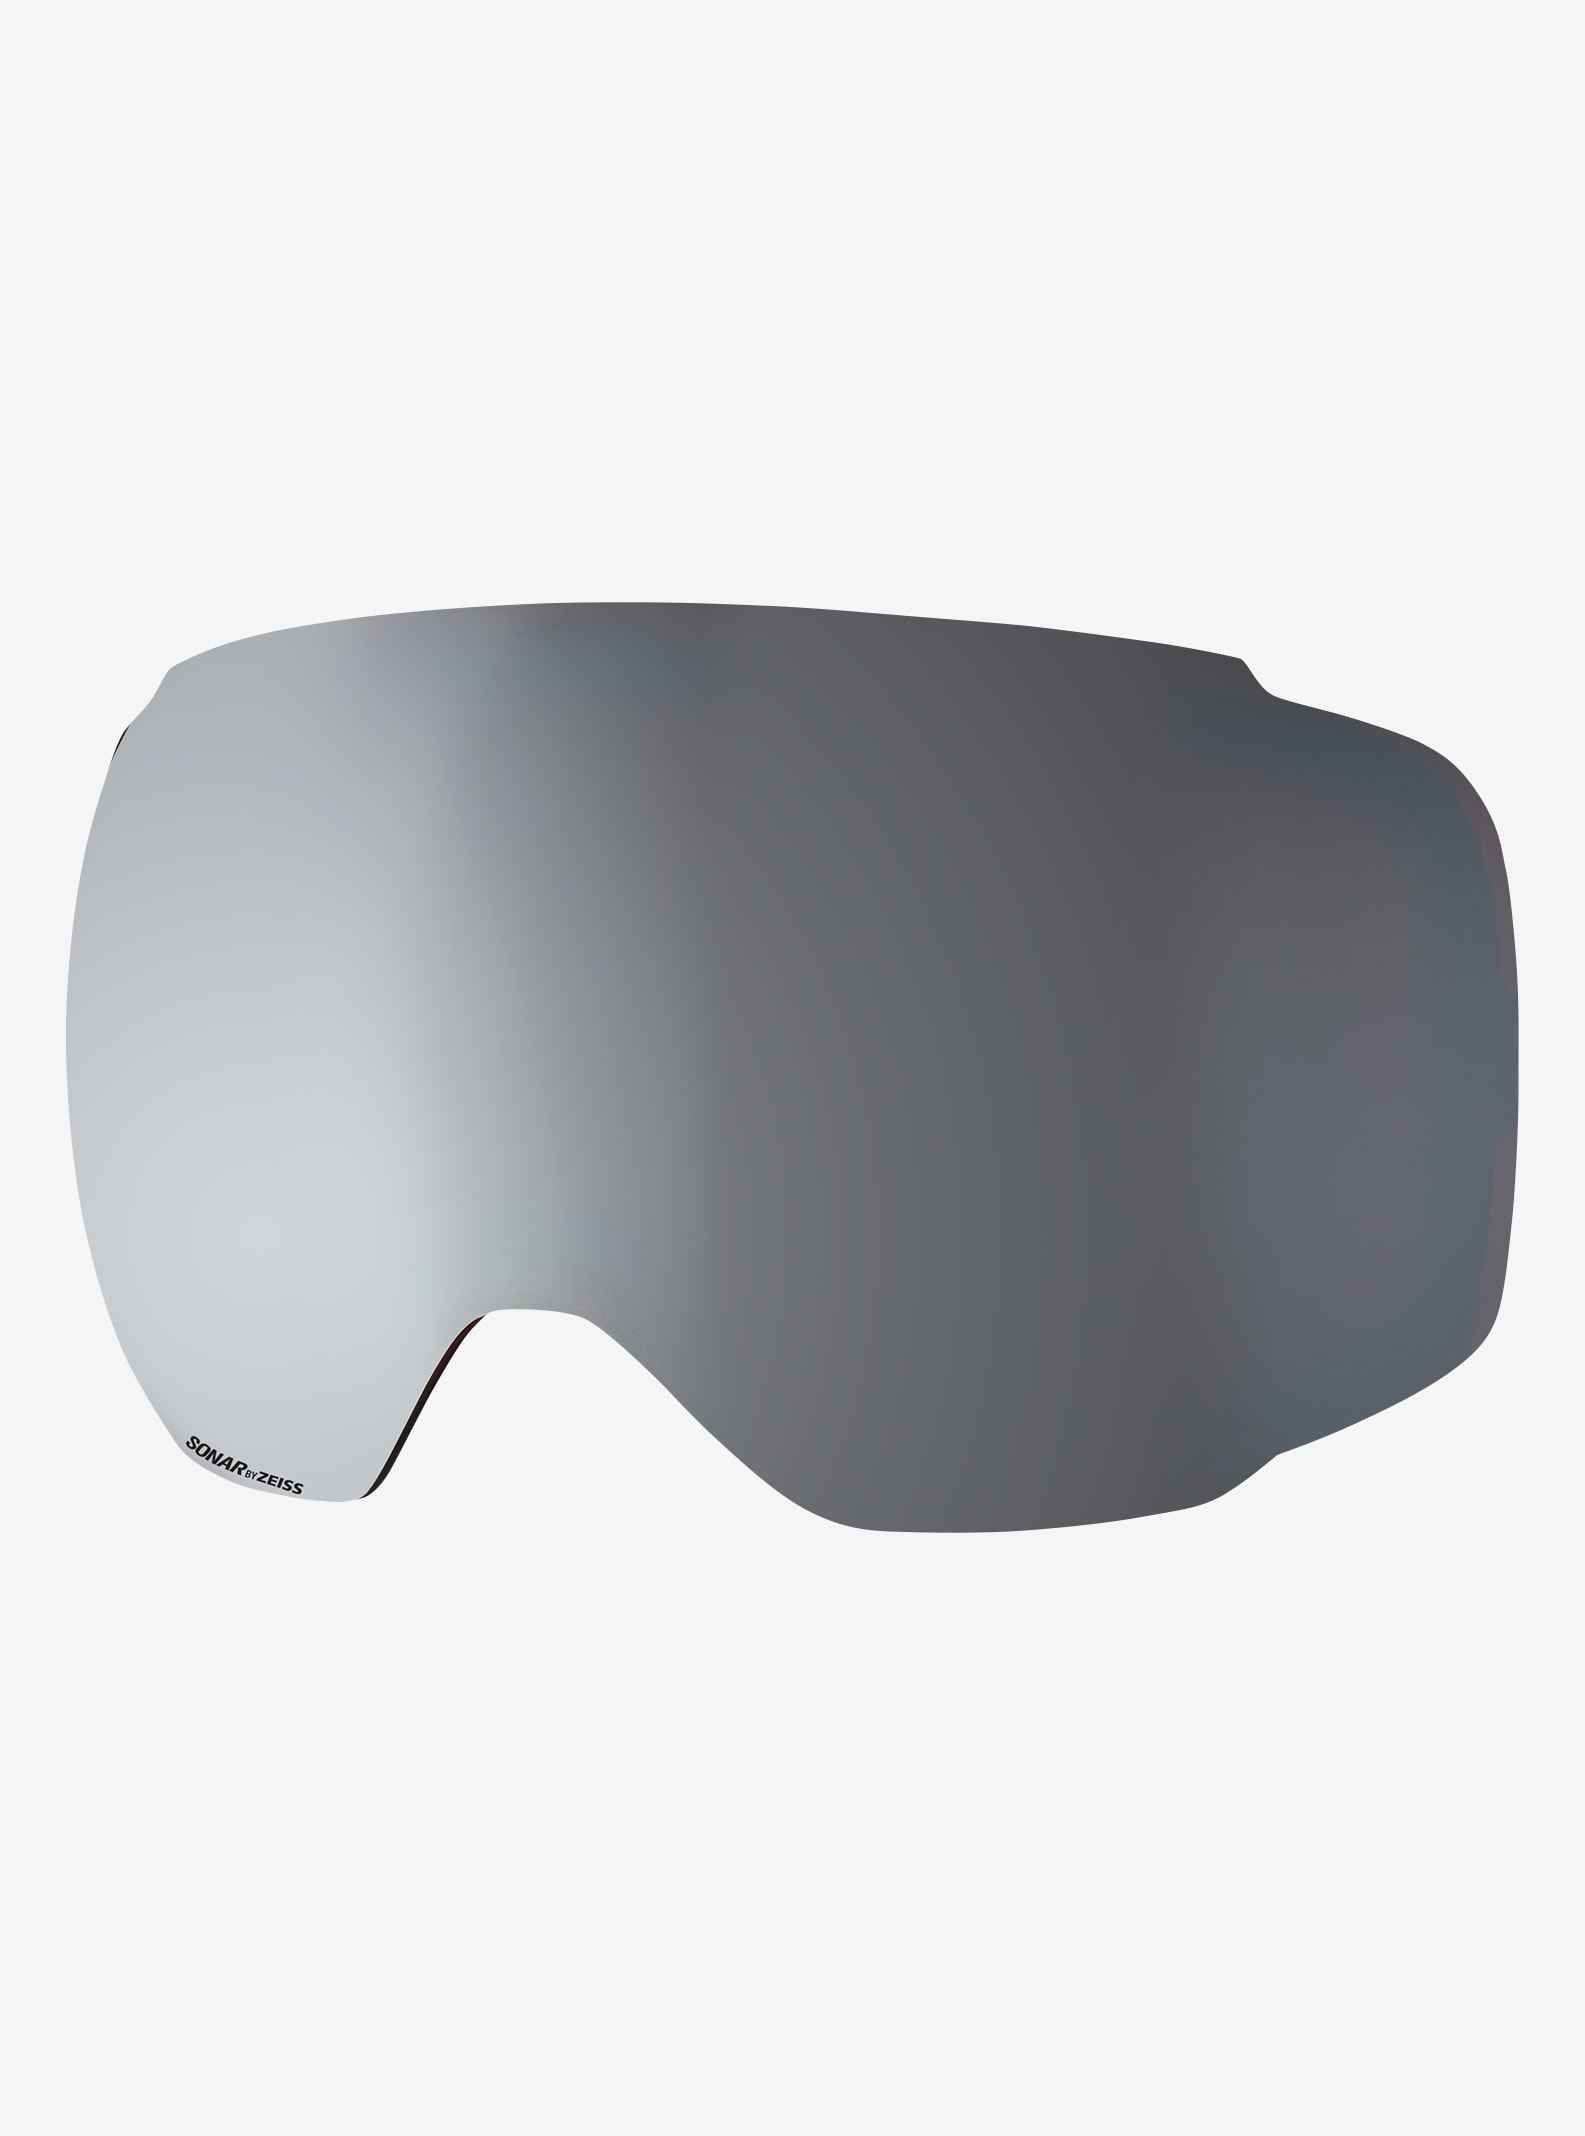 Men's Anon M2 Lens shown in SONAR Silver (6% VLT)